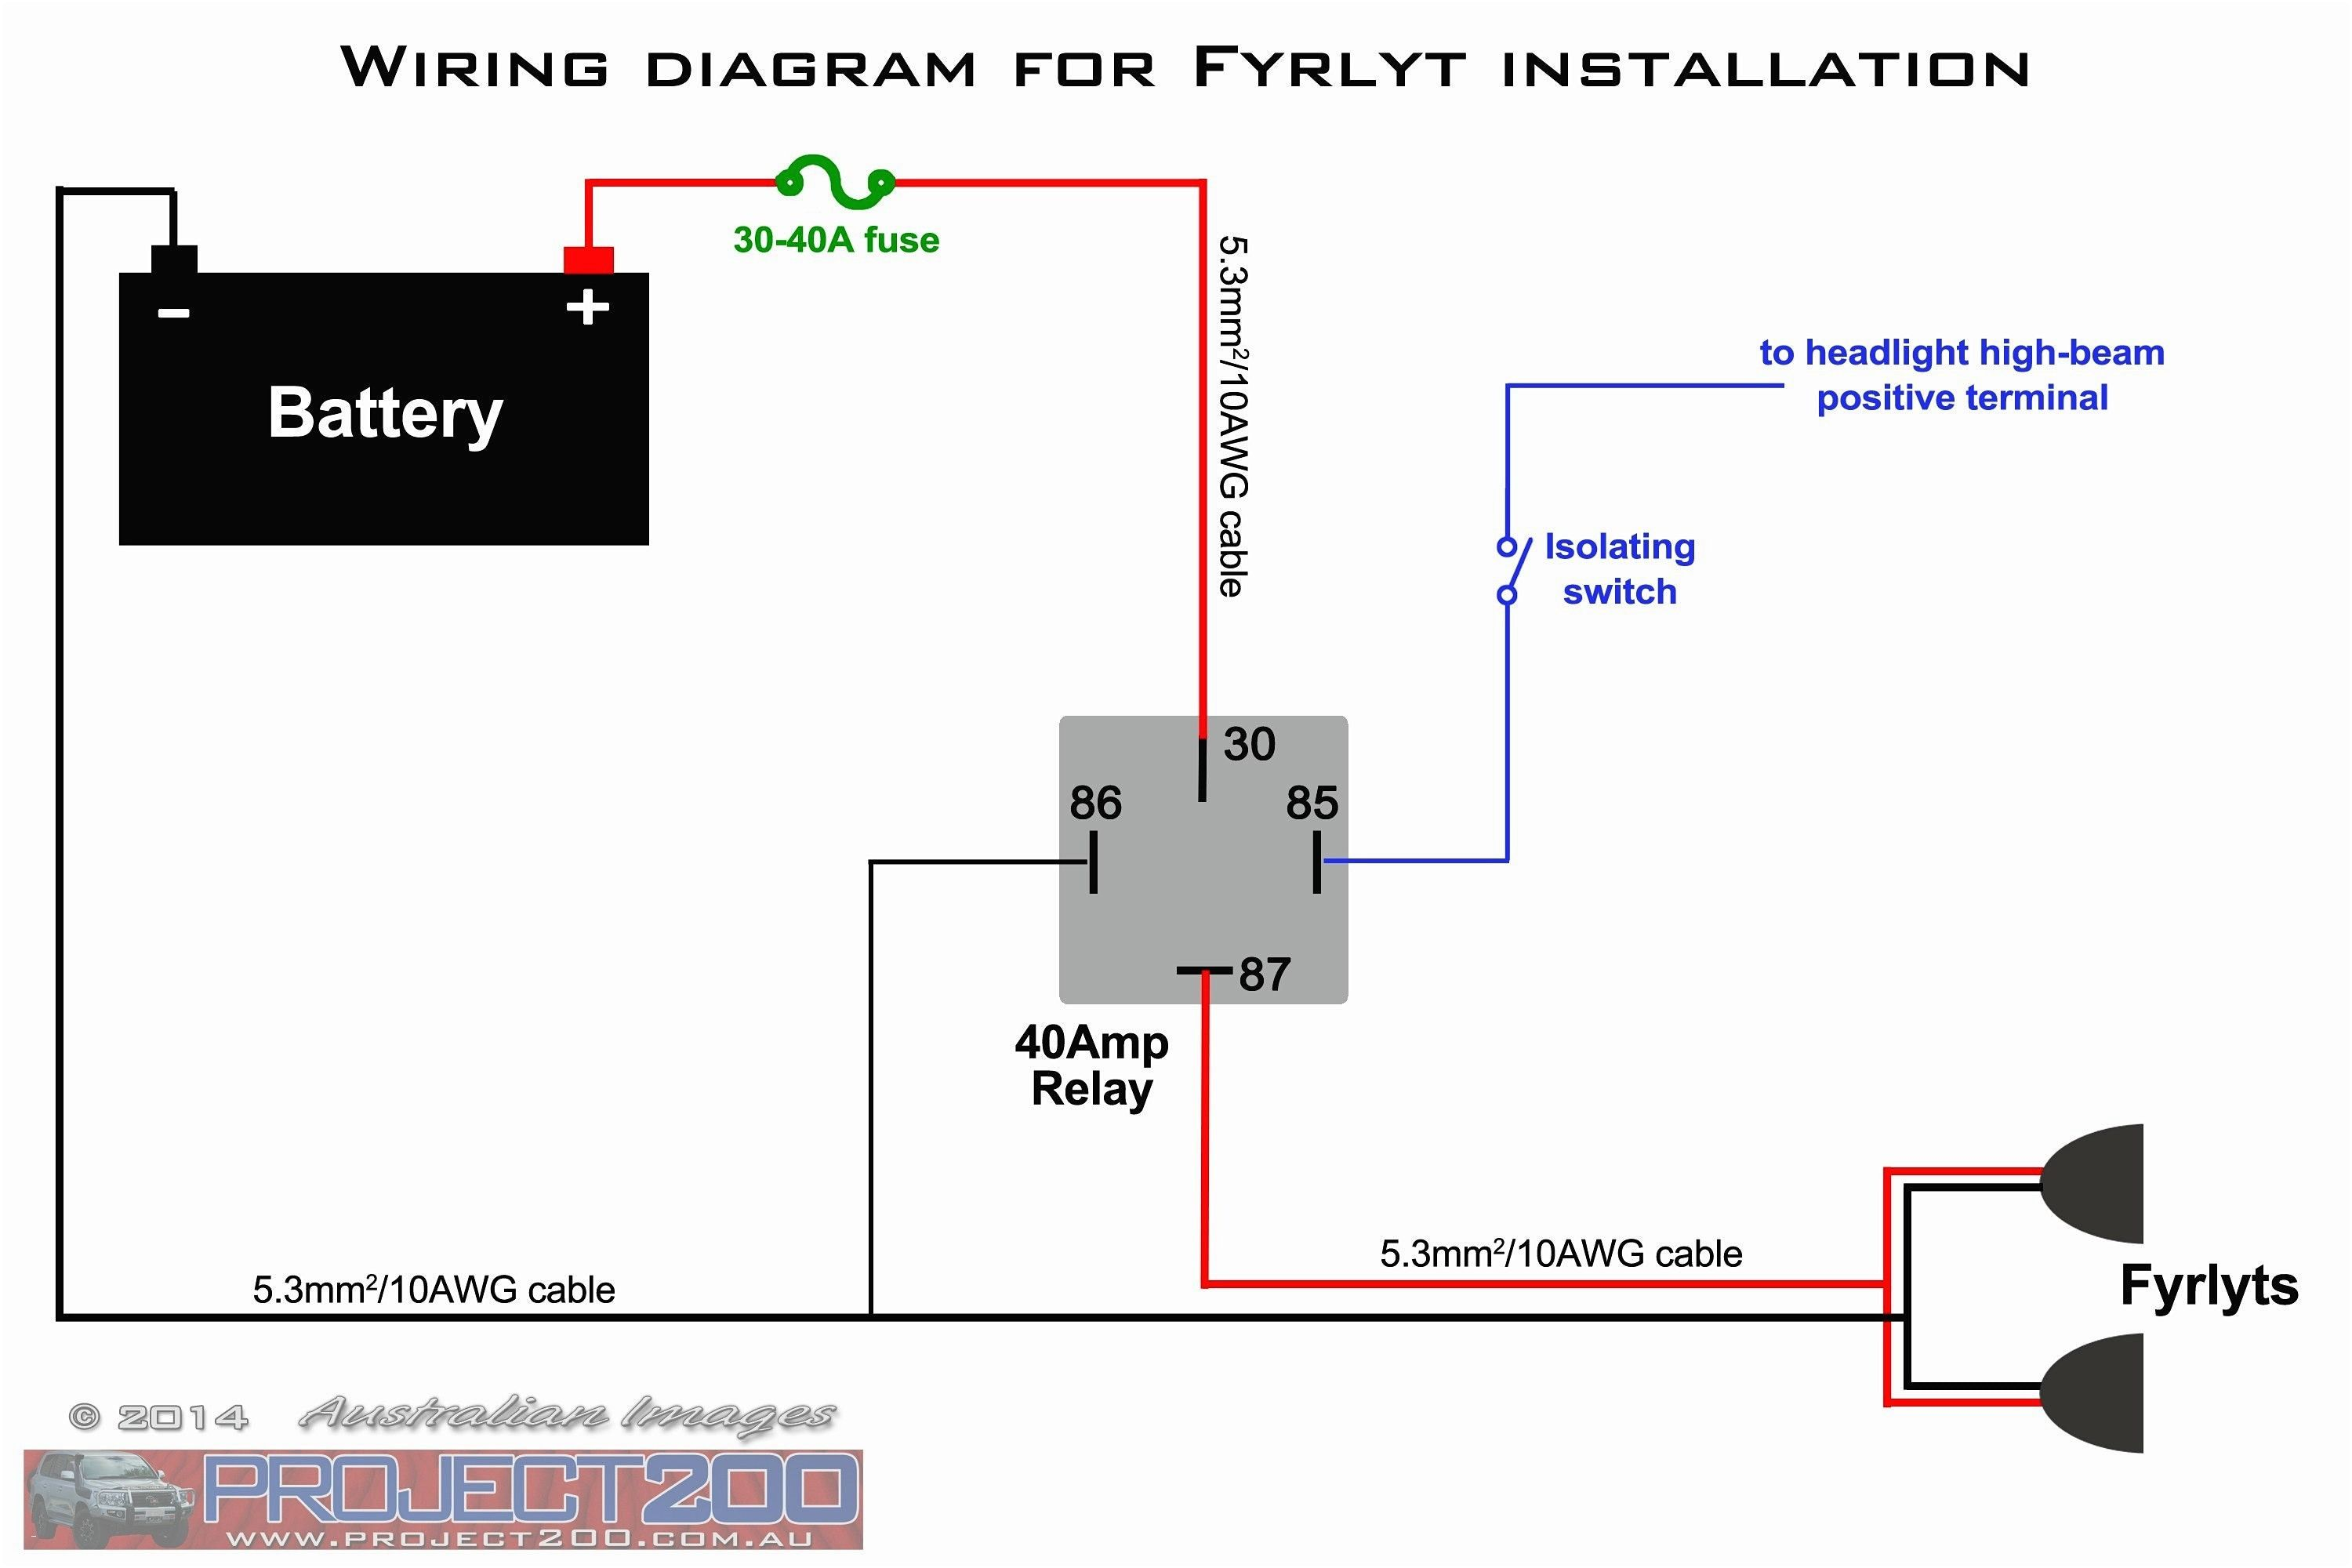 Wiring Diagrams For Auxillary Lights W 30 Amp Relay And 3 ... on 3 way rocker switch wiring diagram, 3 way combination switch wiring diagram, 3 way speaker wiring diagram, 3 way rotary switch wiring diagram,